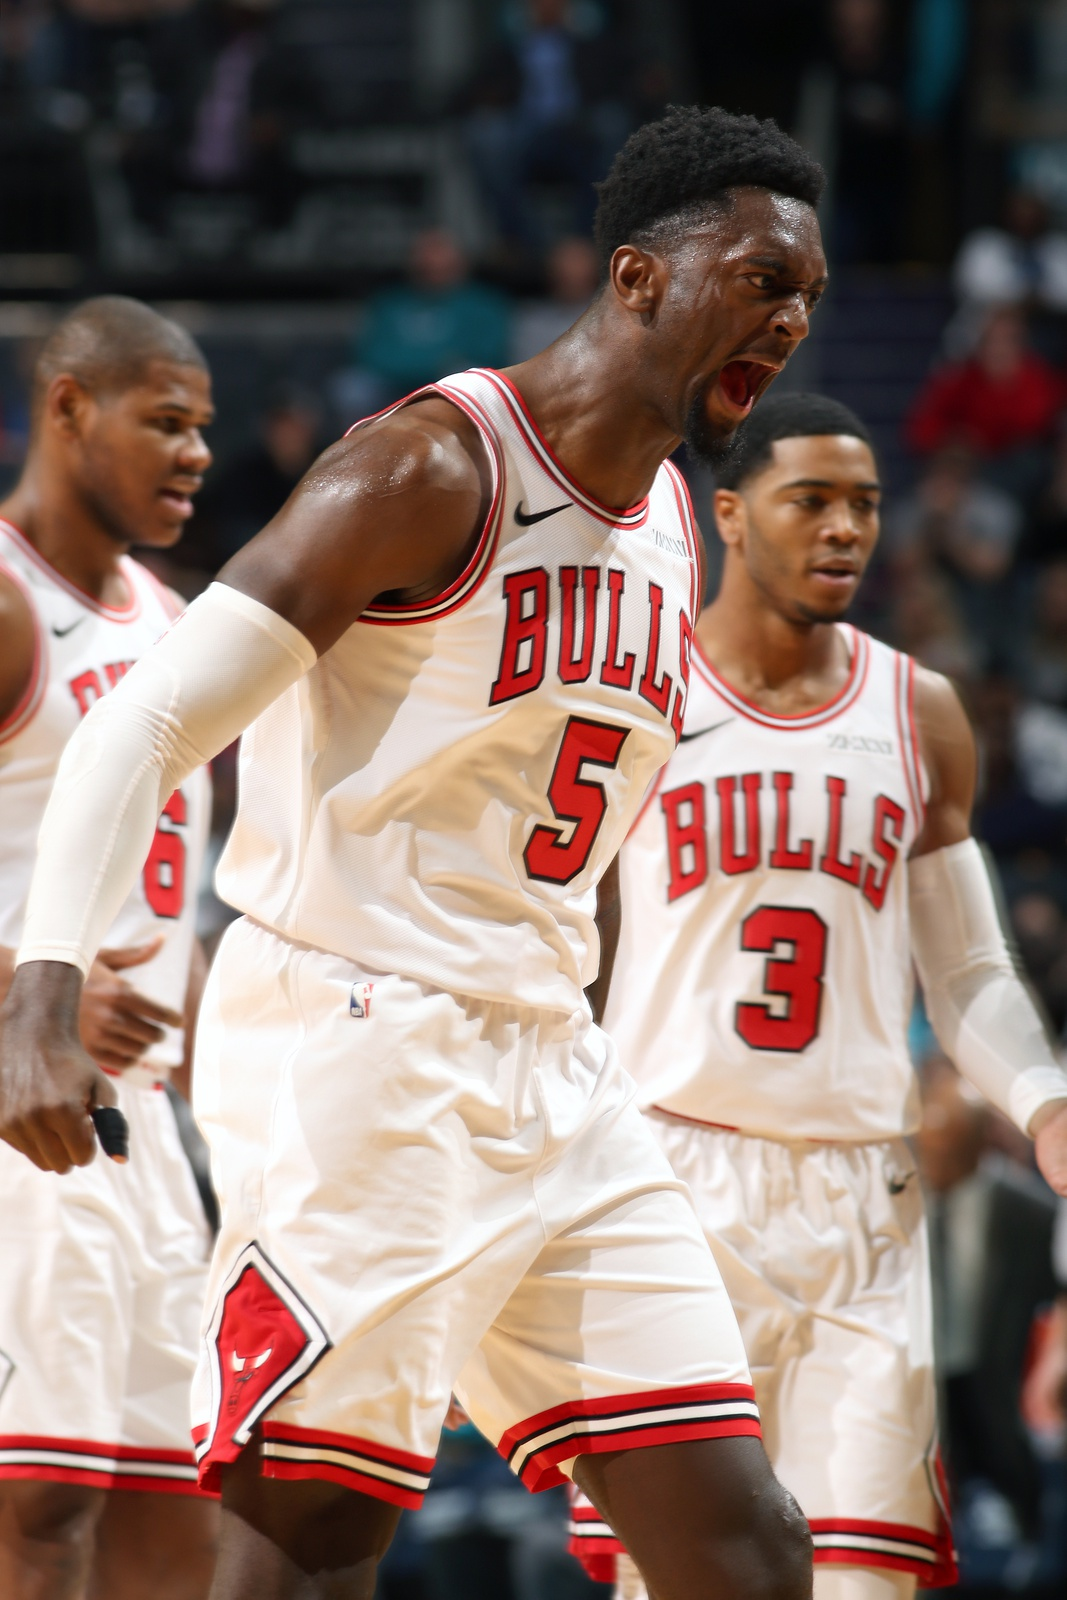 Bobby Portis #5 of the Chicago Bulls reacts to a play during the game against the Charlotte Hornets on February 2, 2019 at the Spectrum Center in Charlotte, North Carolina.